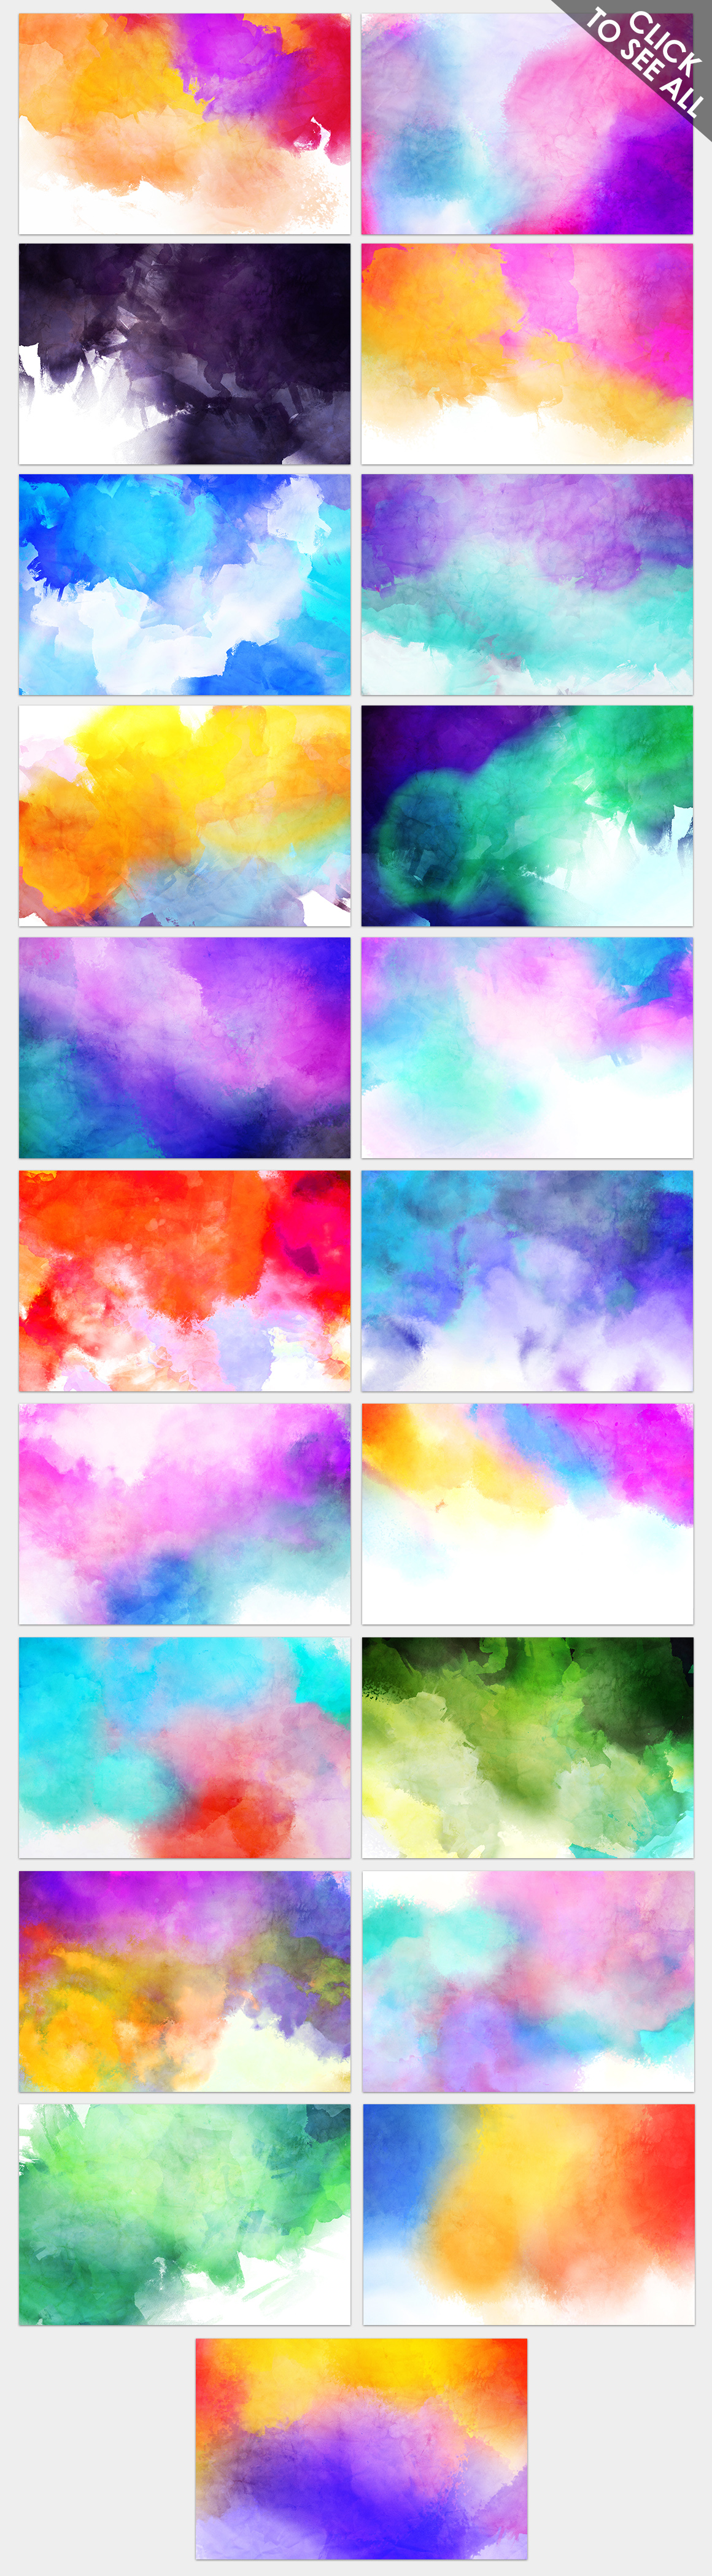 Only Watercolor Backgrounds Bundle example image 19